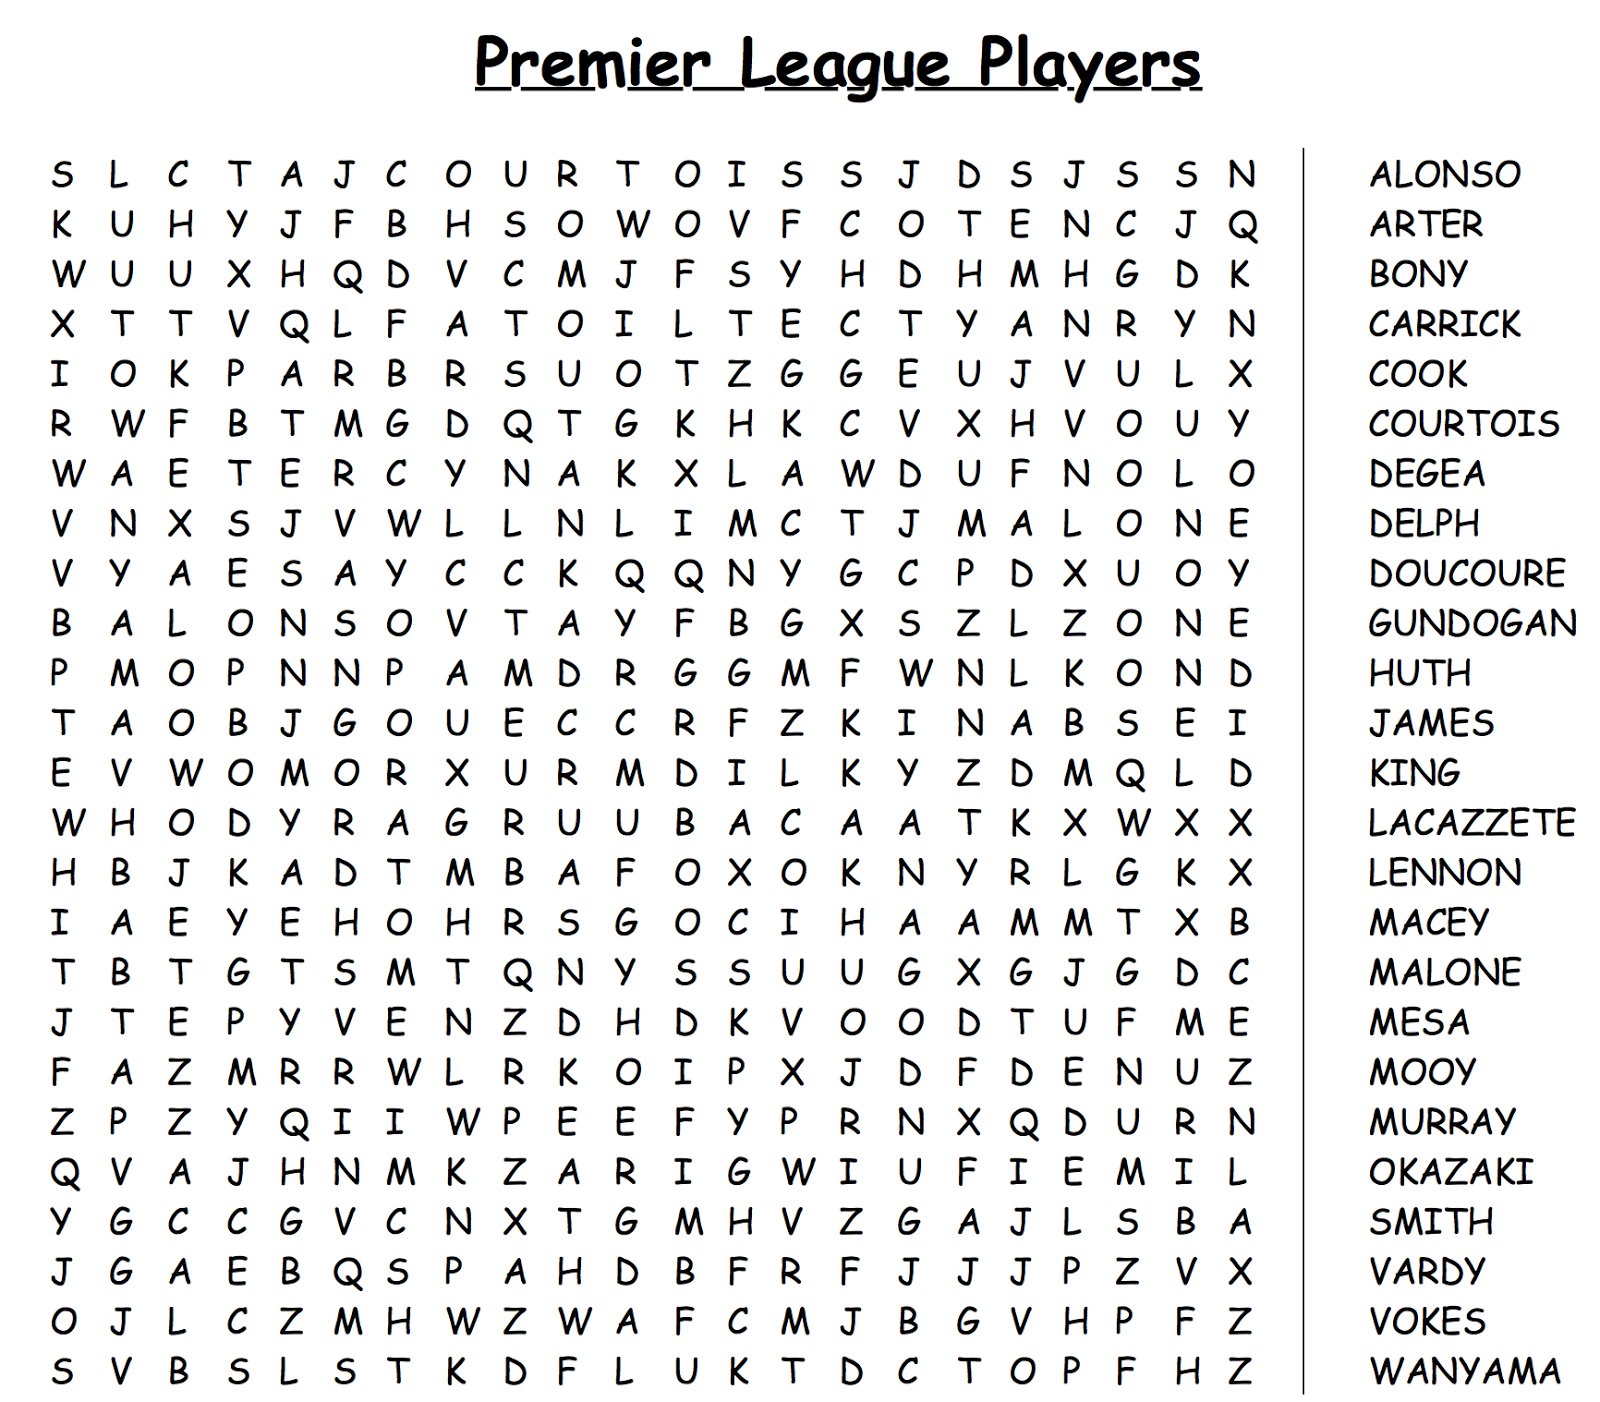 Daily Wordsearches: Word Search 3 - Premier League Players